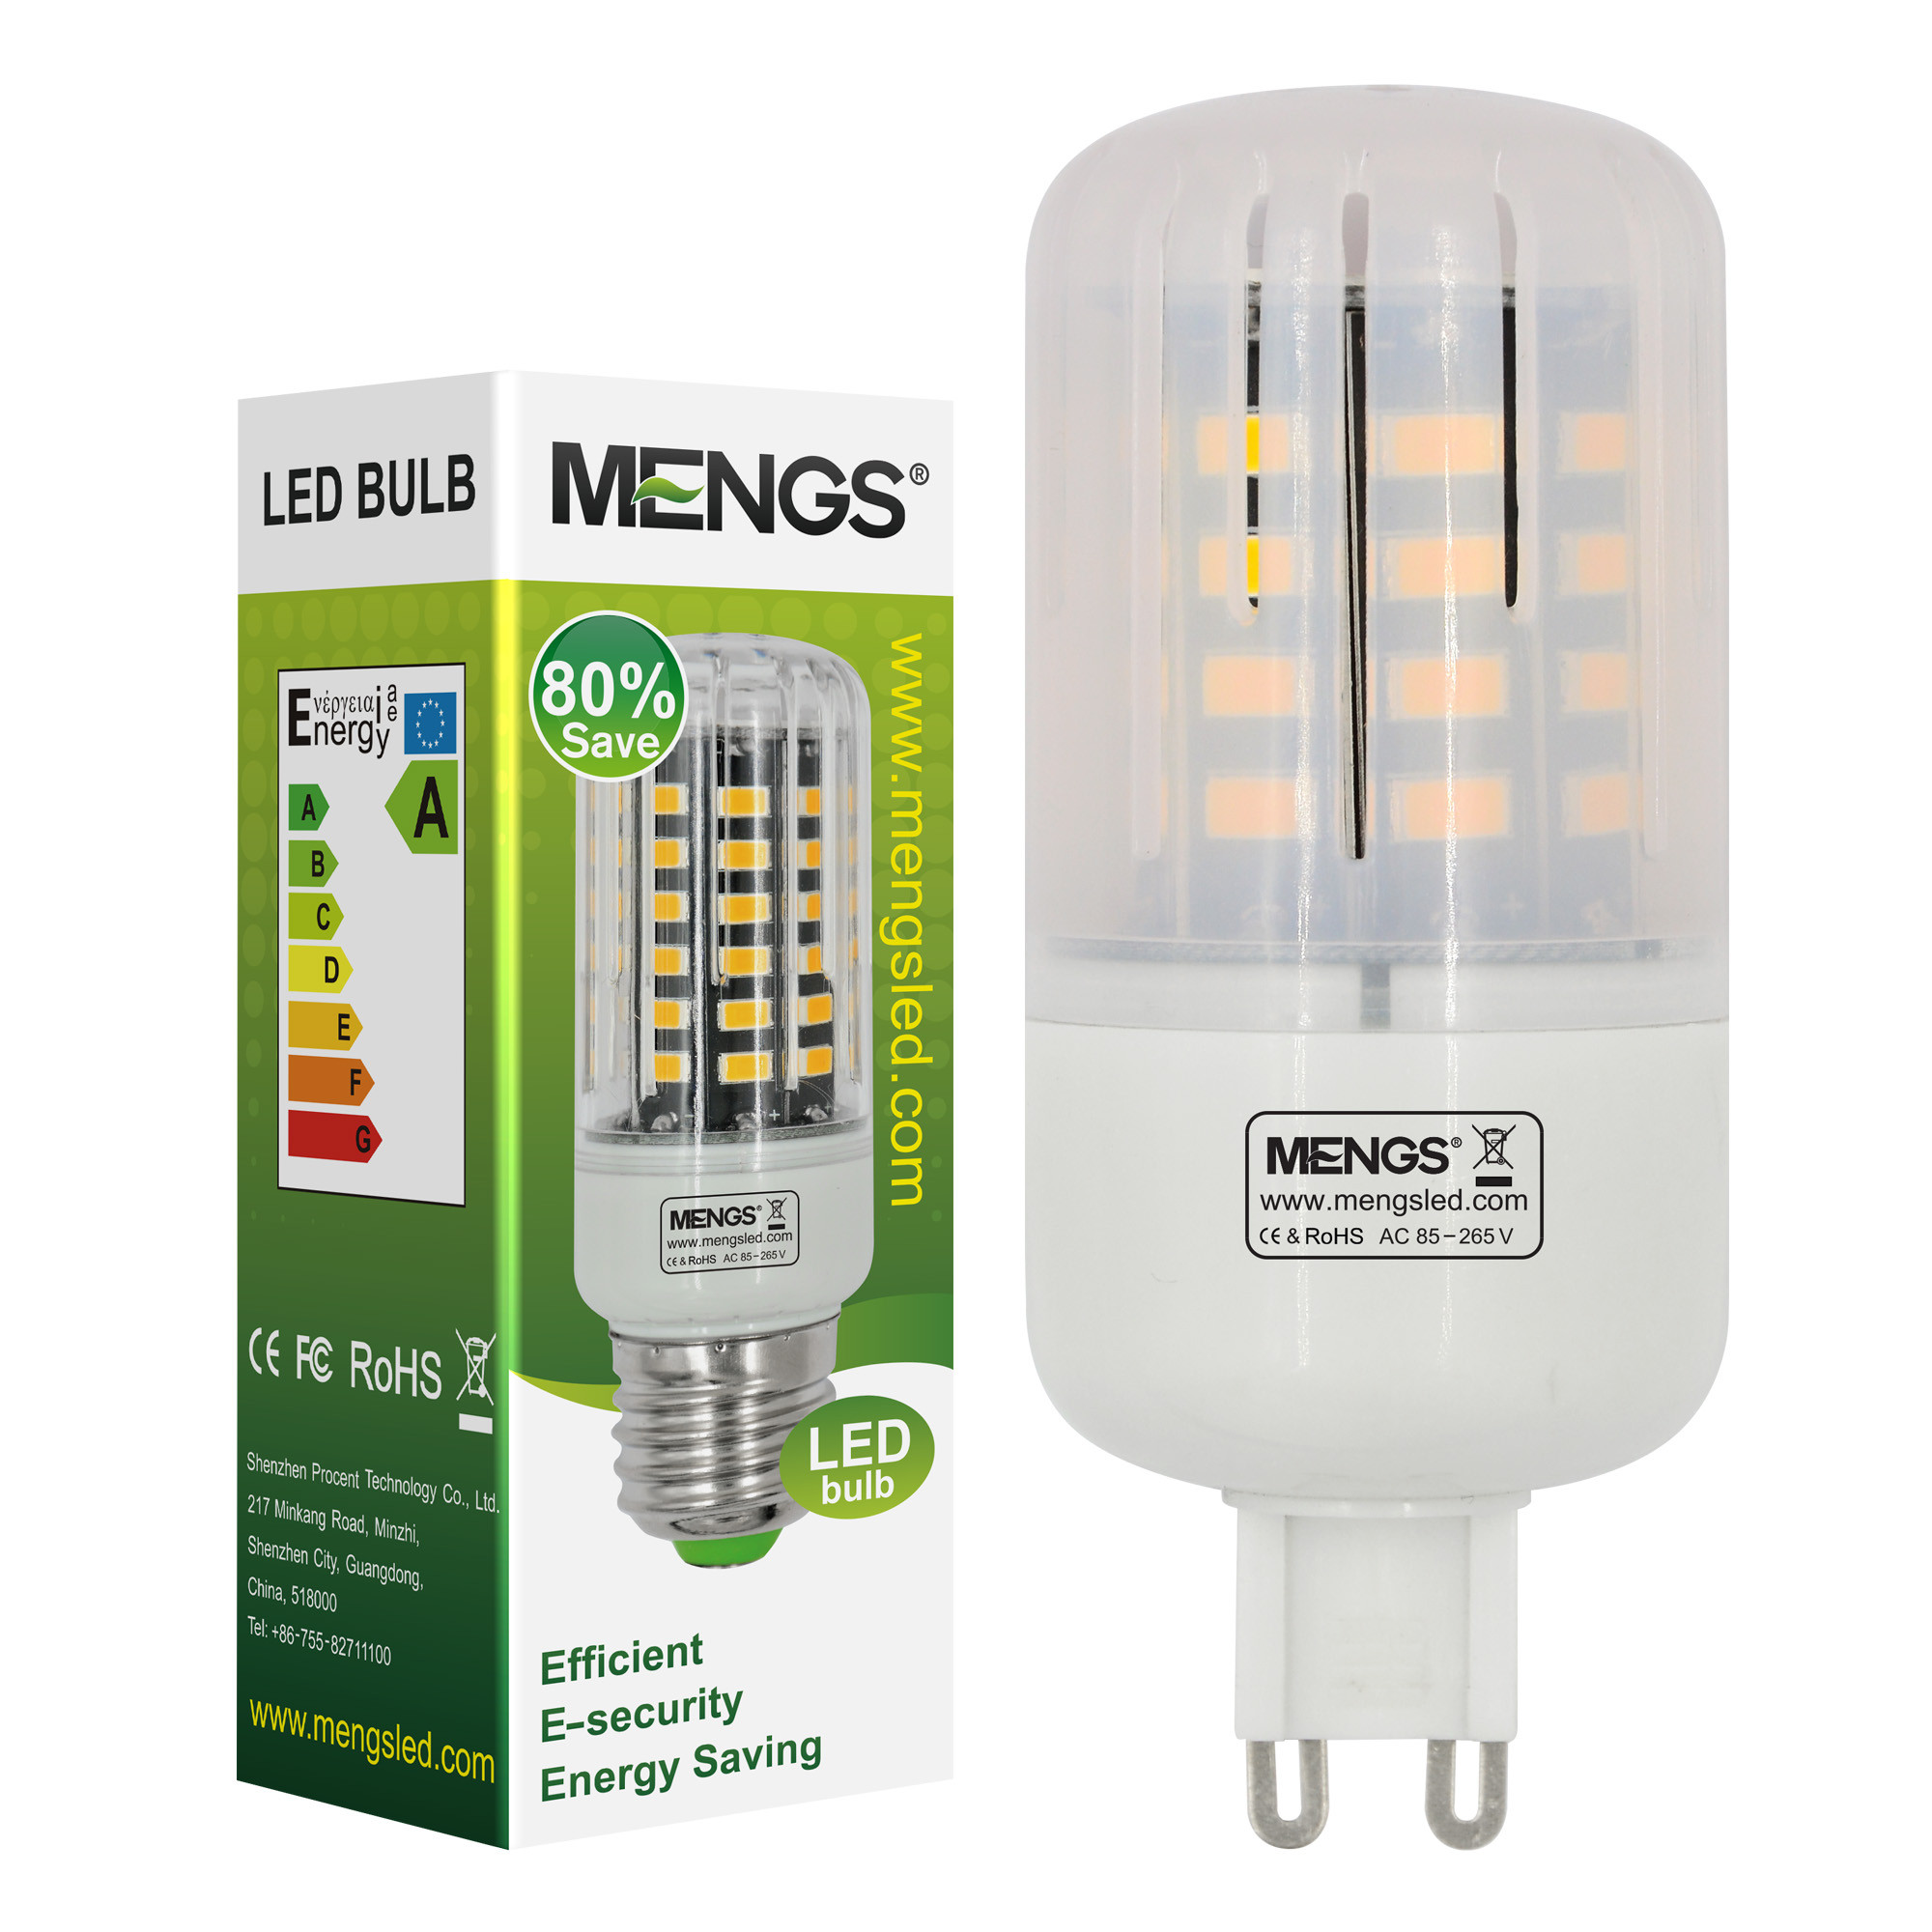 MENGS® Anti-Strobe G9 5W LED Corn Light 40x 5736 SMD LB LED Bulb Lamp In Cool White Energy-Saving Lamp